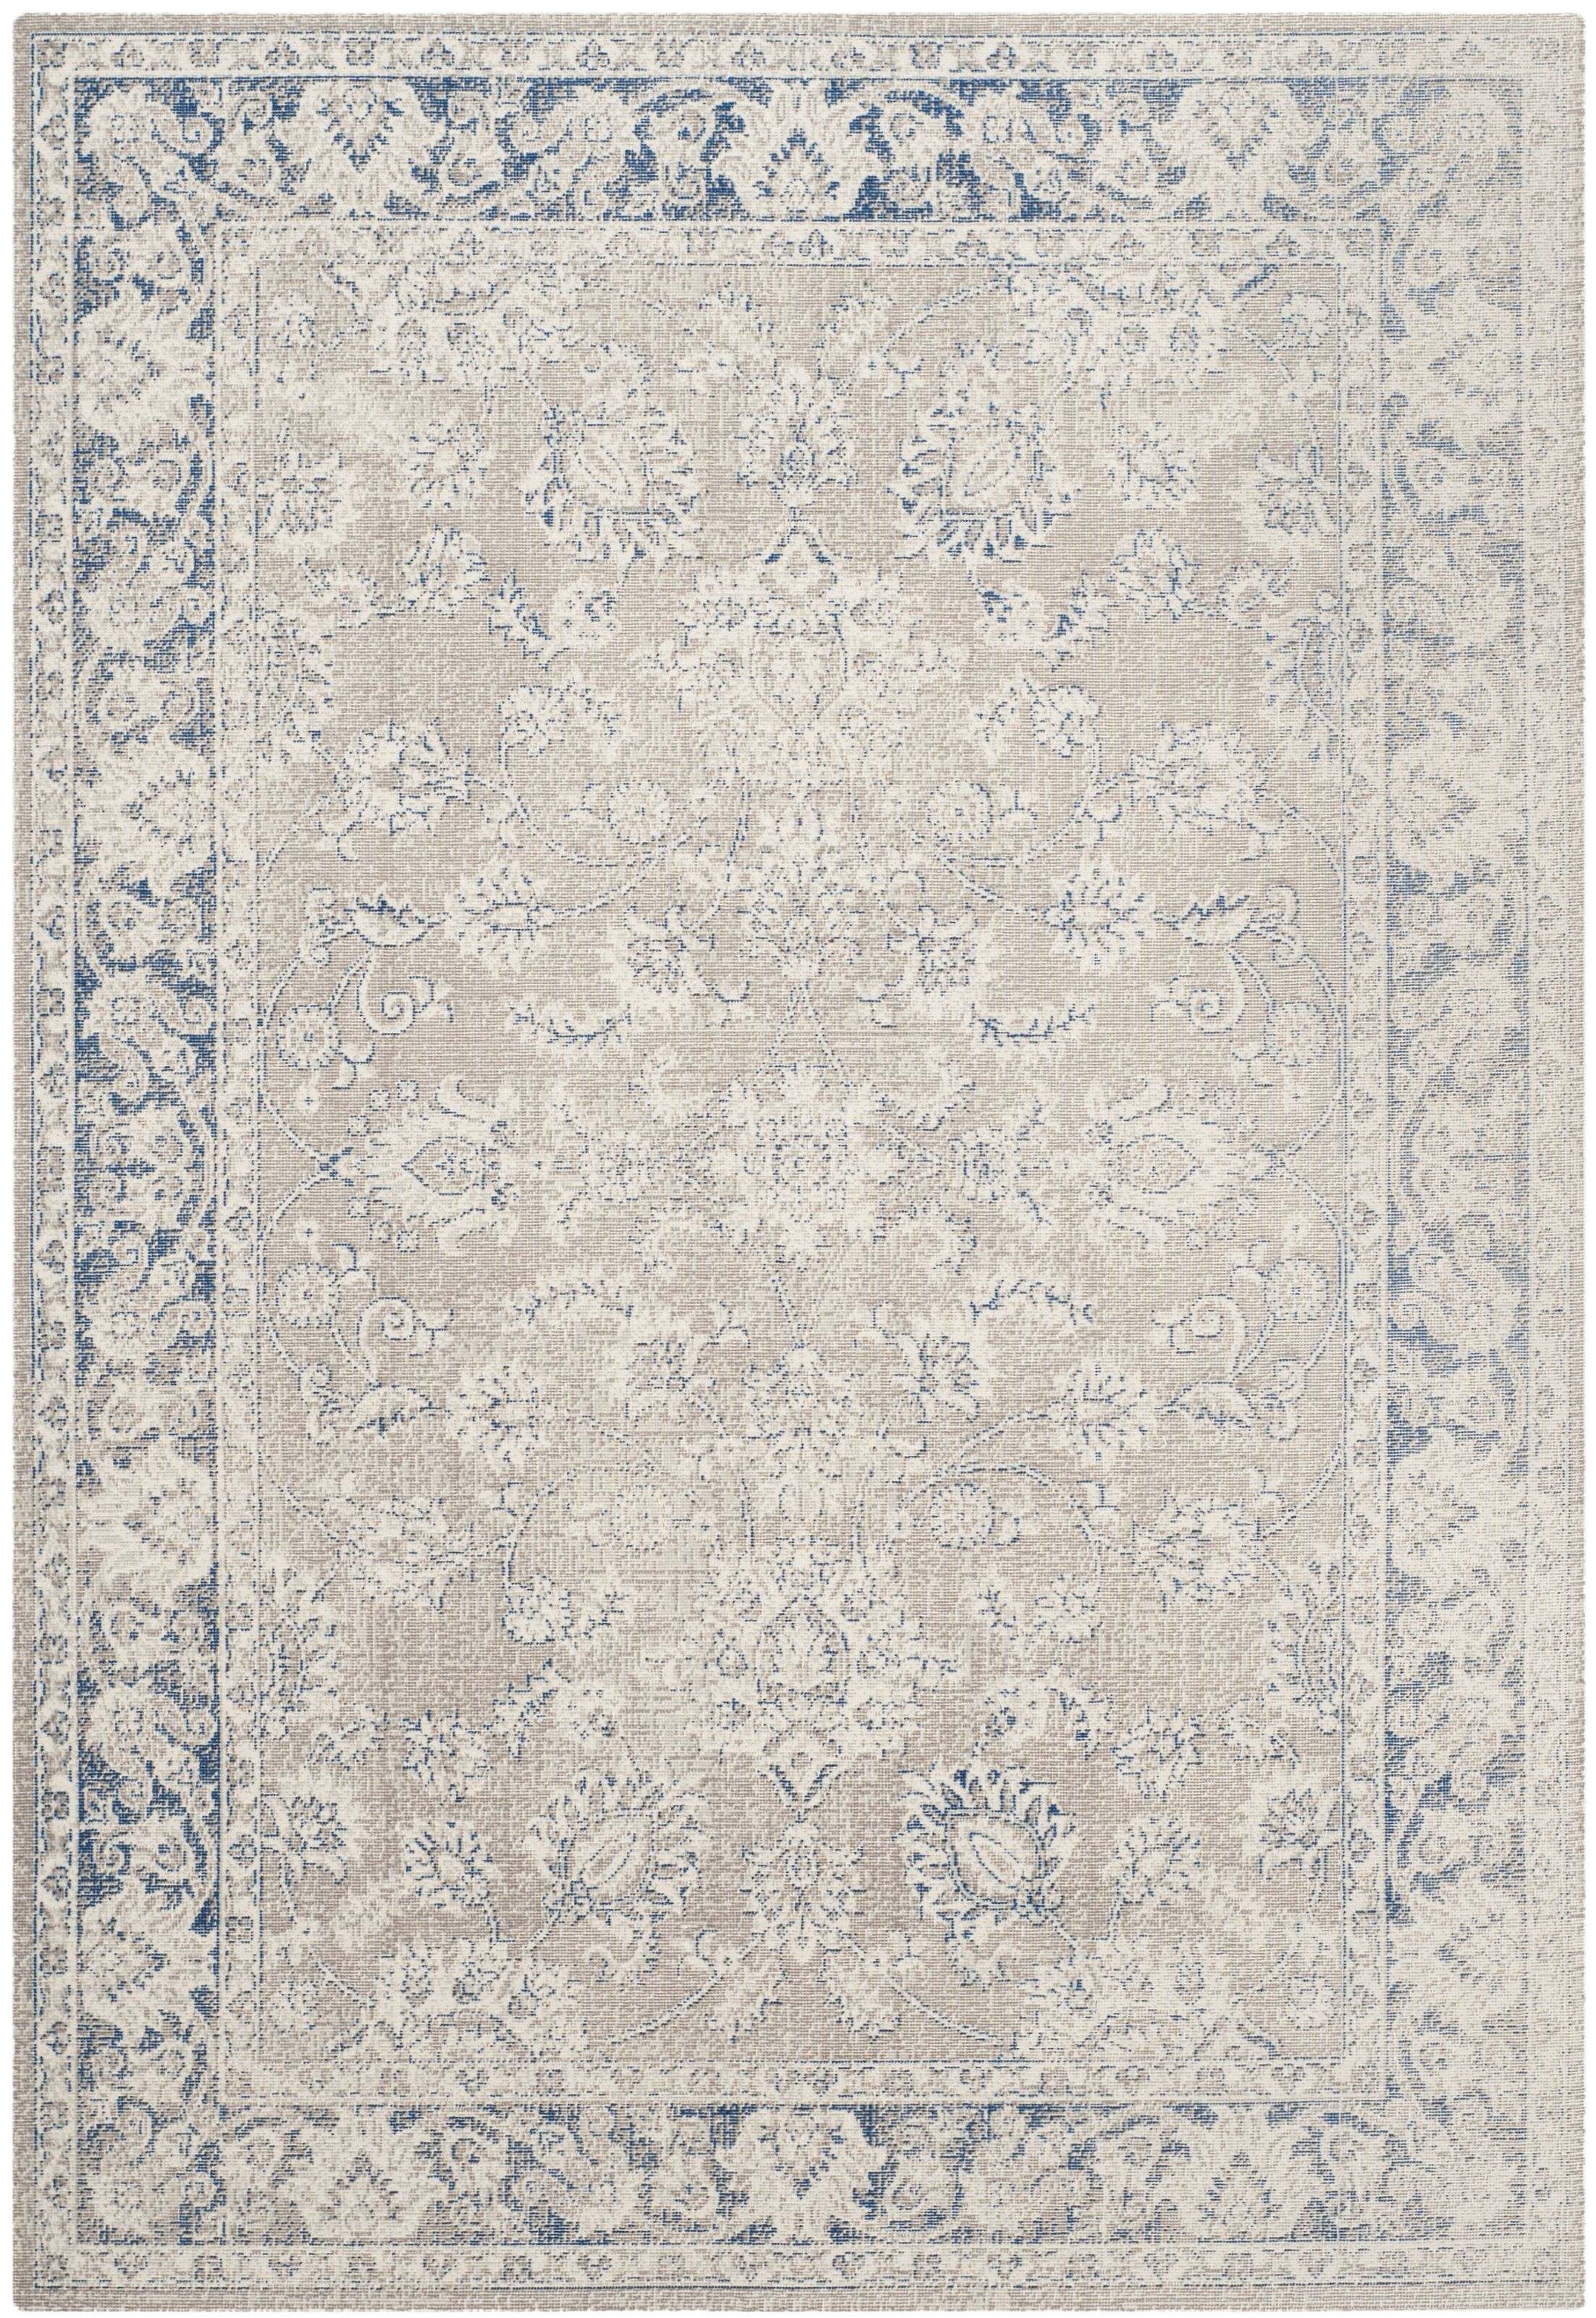 Palaiseur Taupe/Blue Area Rug Rug Size: Rectangle 5'1